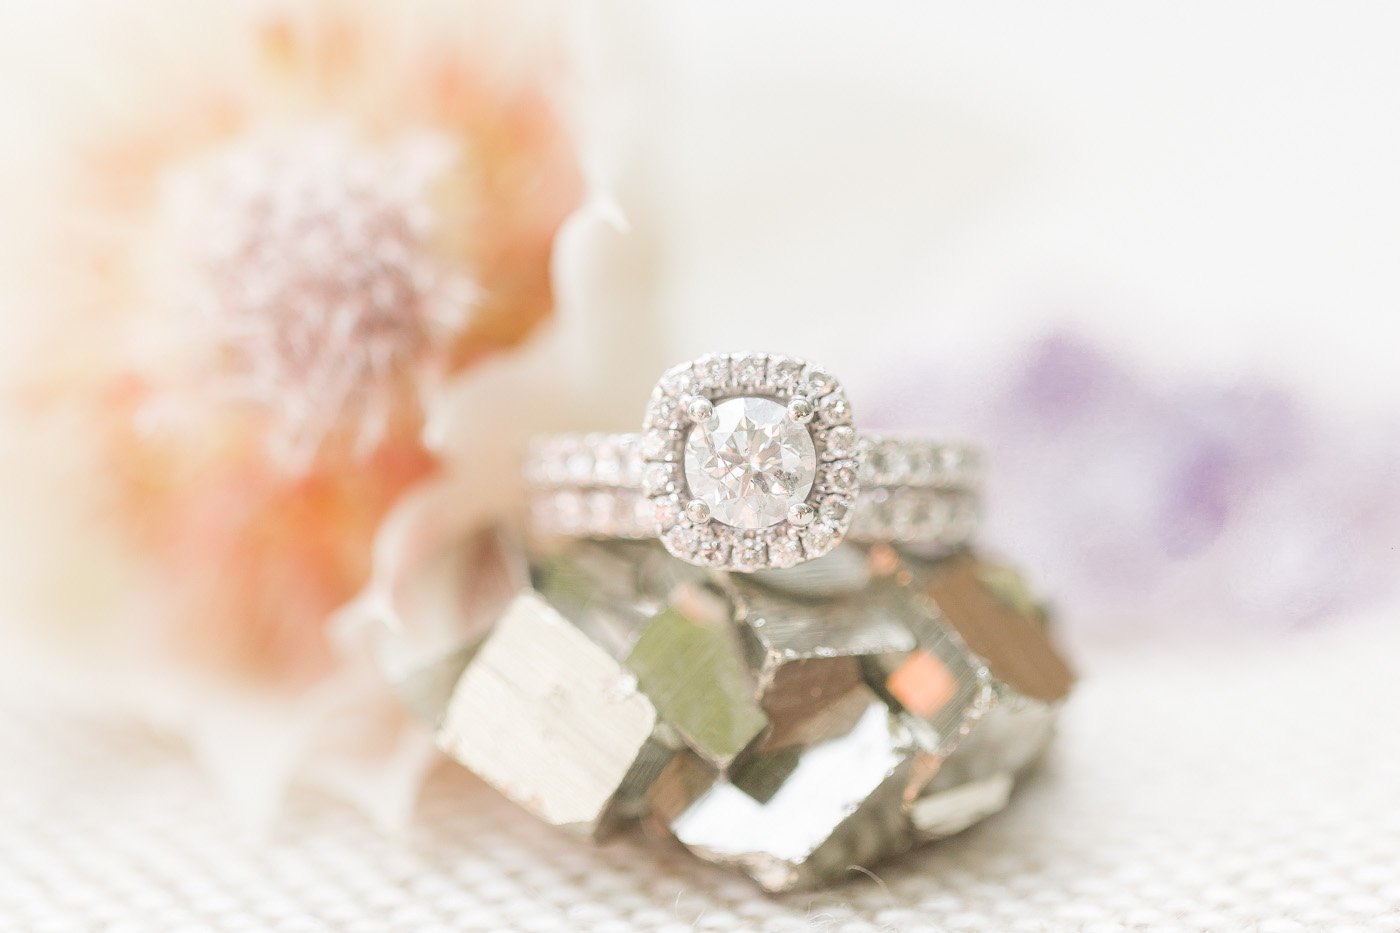 pave engagement rings - photo by Karlee K Photography http://ruffledblog.com/cheerful-desert-wedding-inspiration-with-bright-yellow